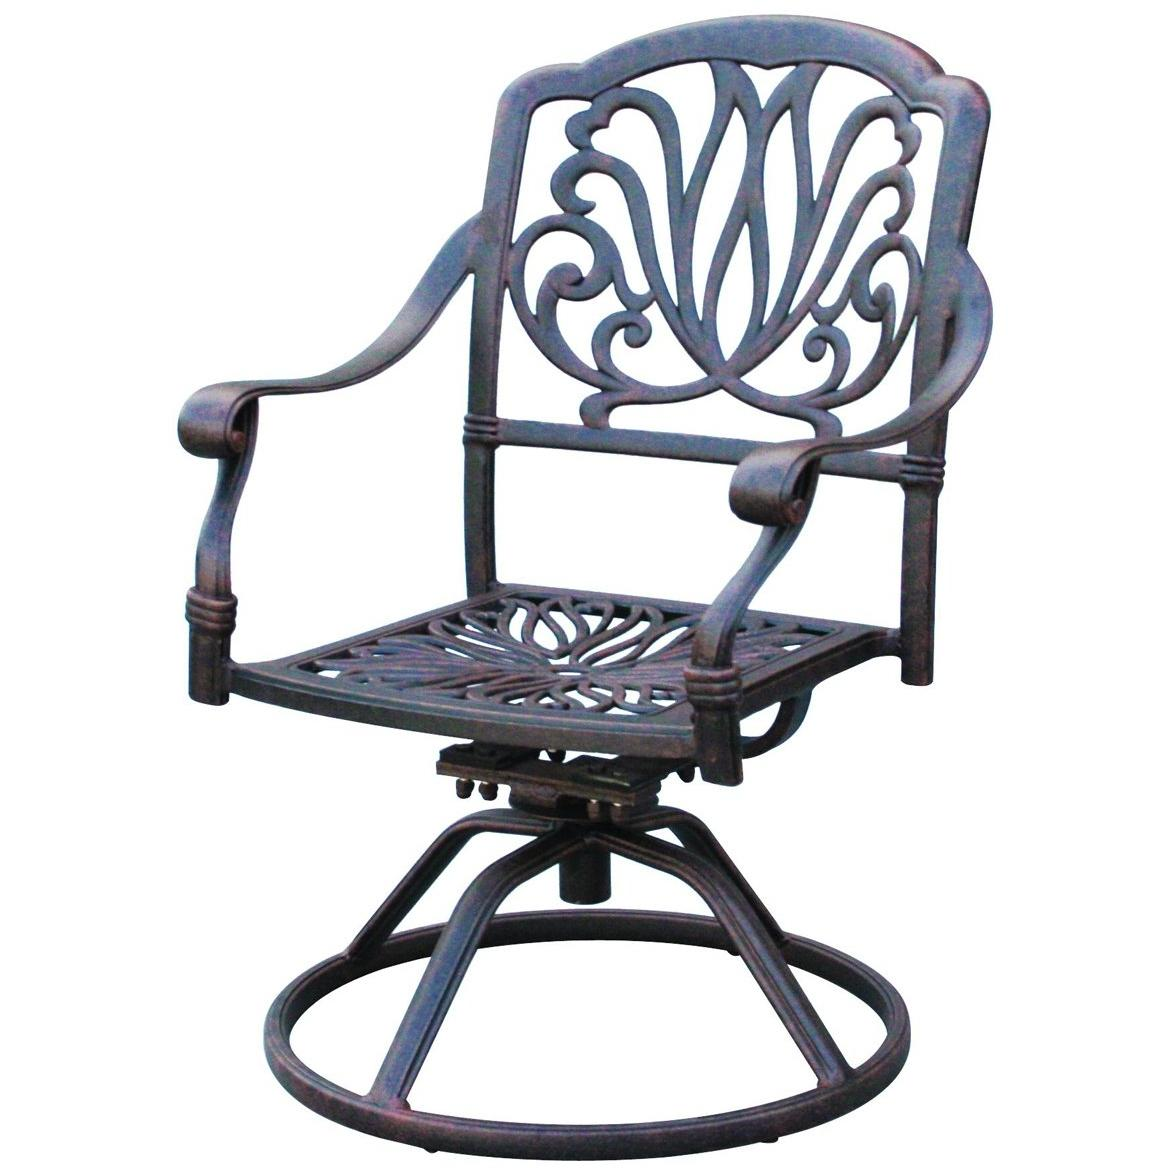 Darlee Elisabeth Cast Aluminum Outdoor Patio Swivel Rocker Chair With Cushion - Antique Bronze